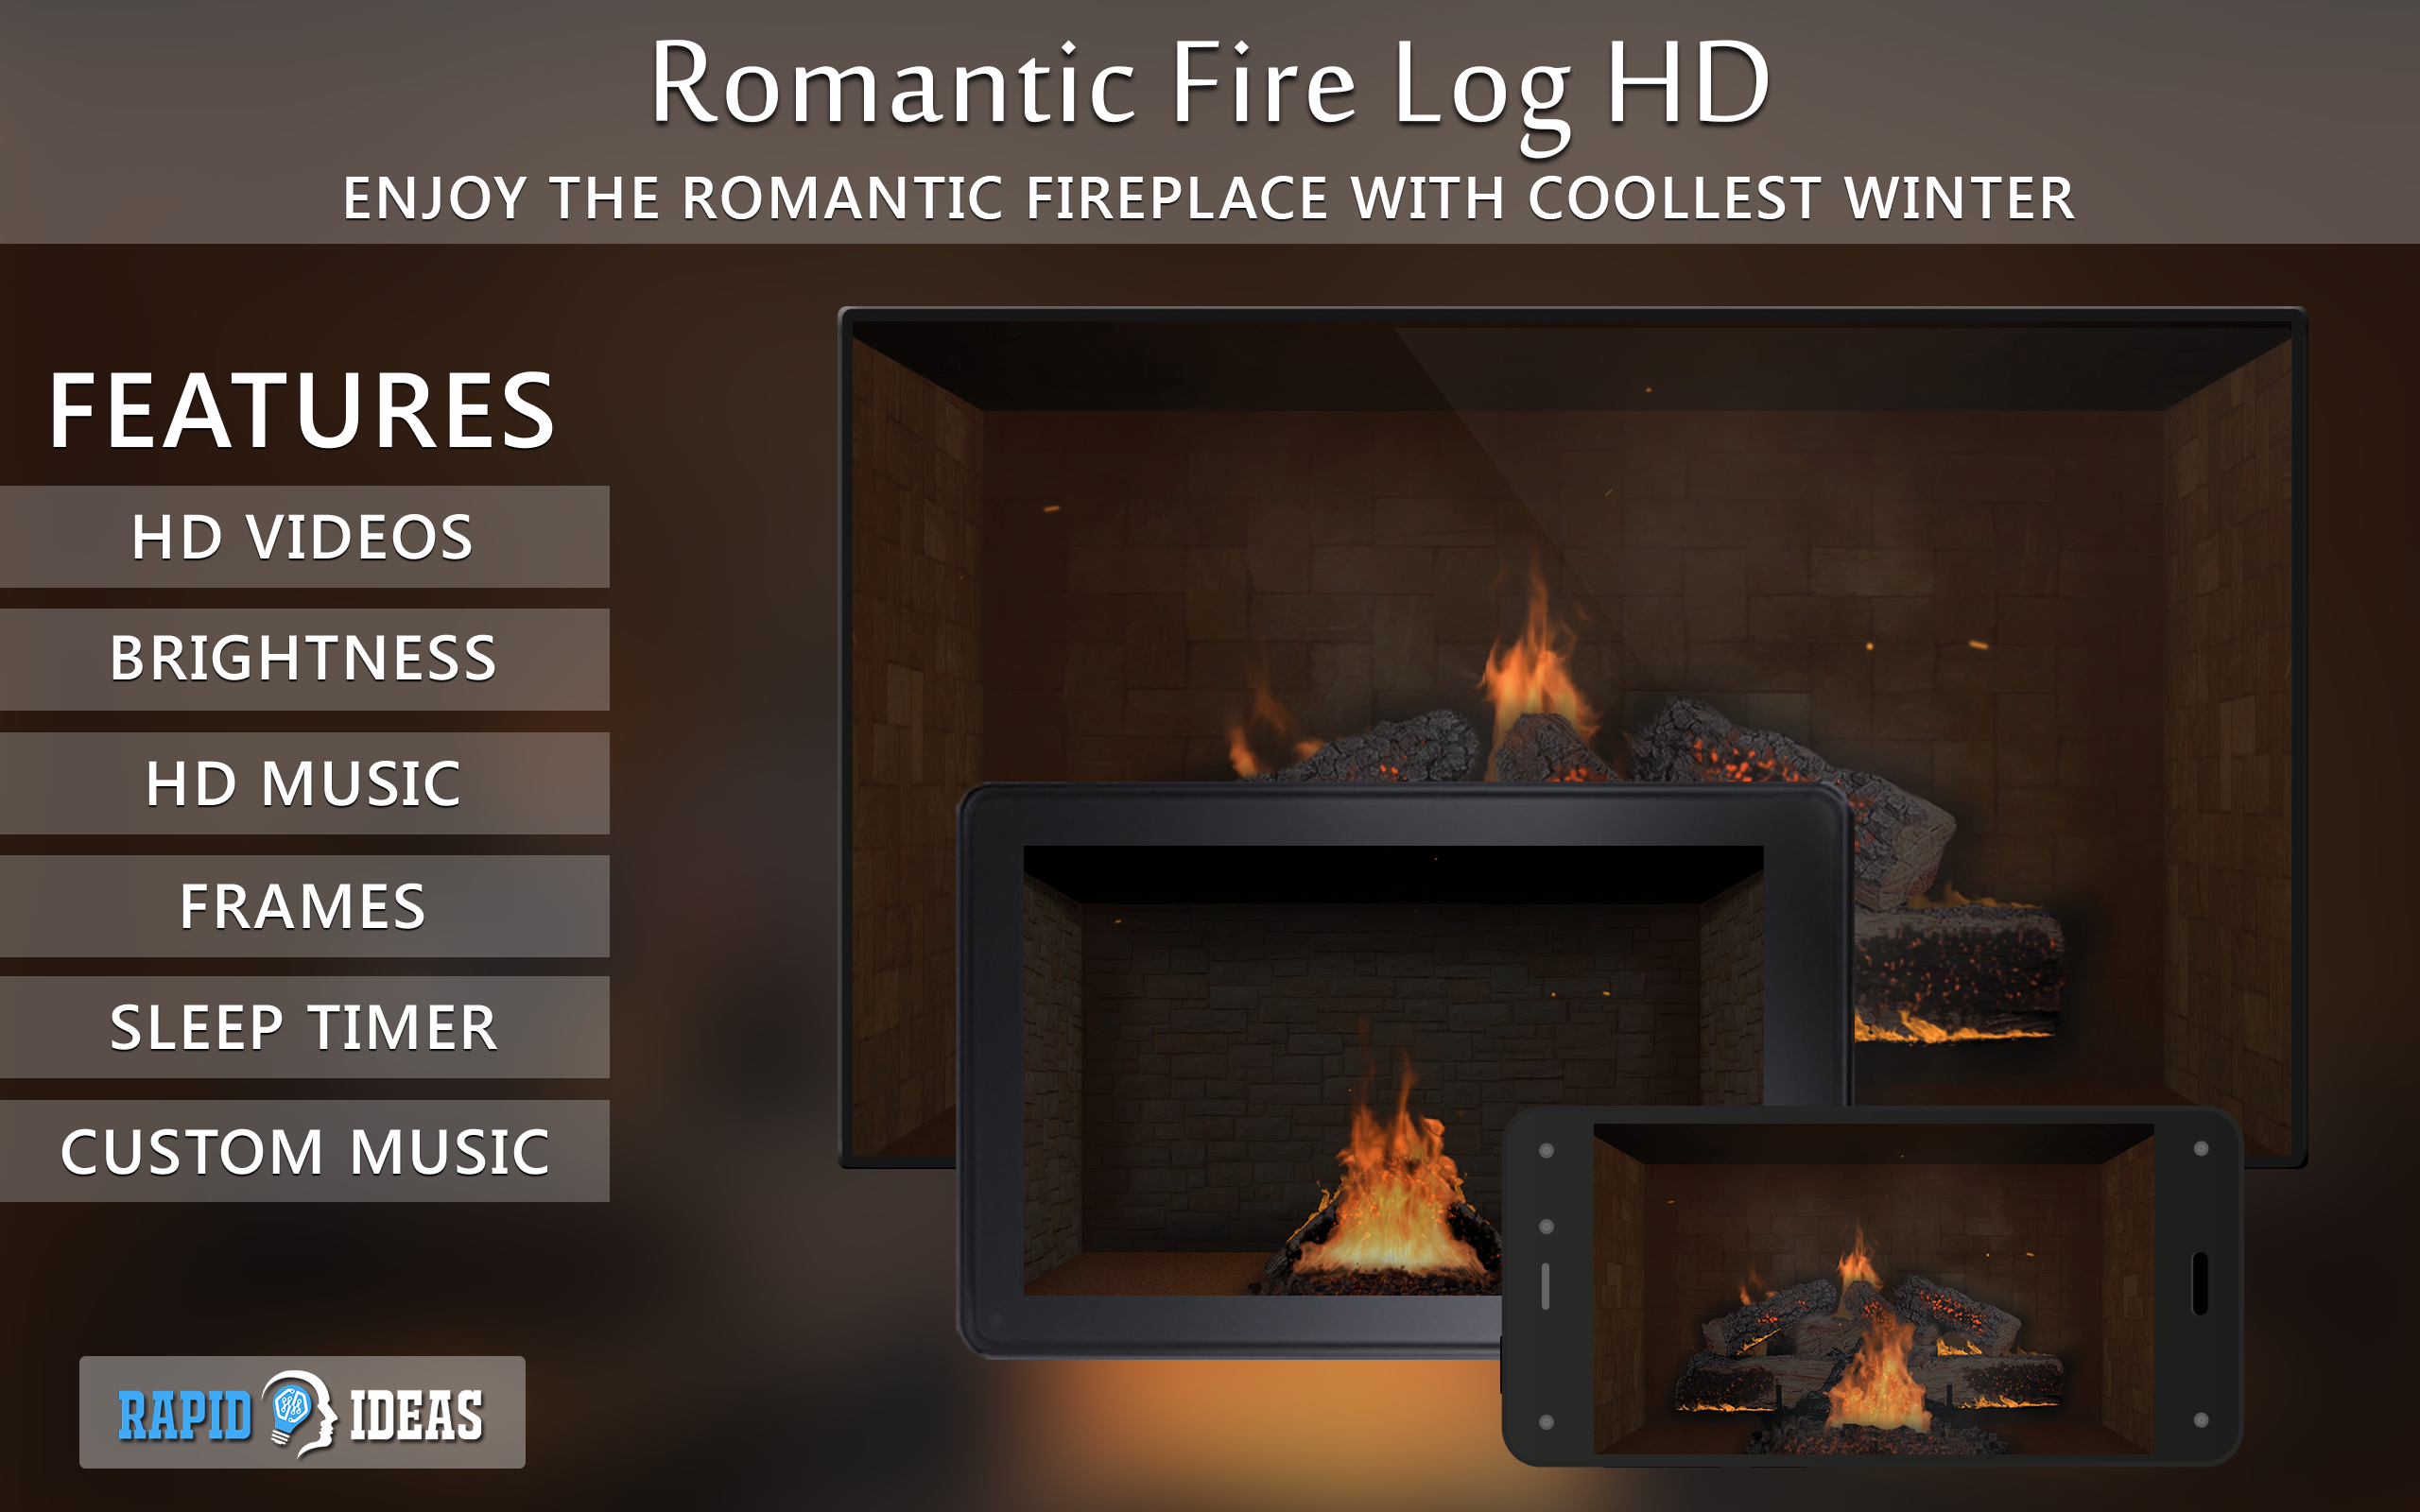 Romantic Fire Log Hd Fireplace Wallpaper Themes Amazon Fr